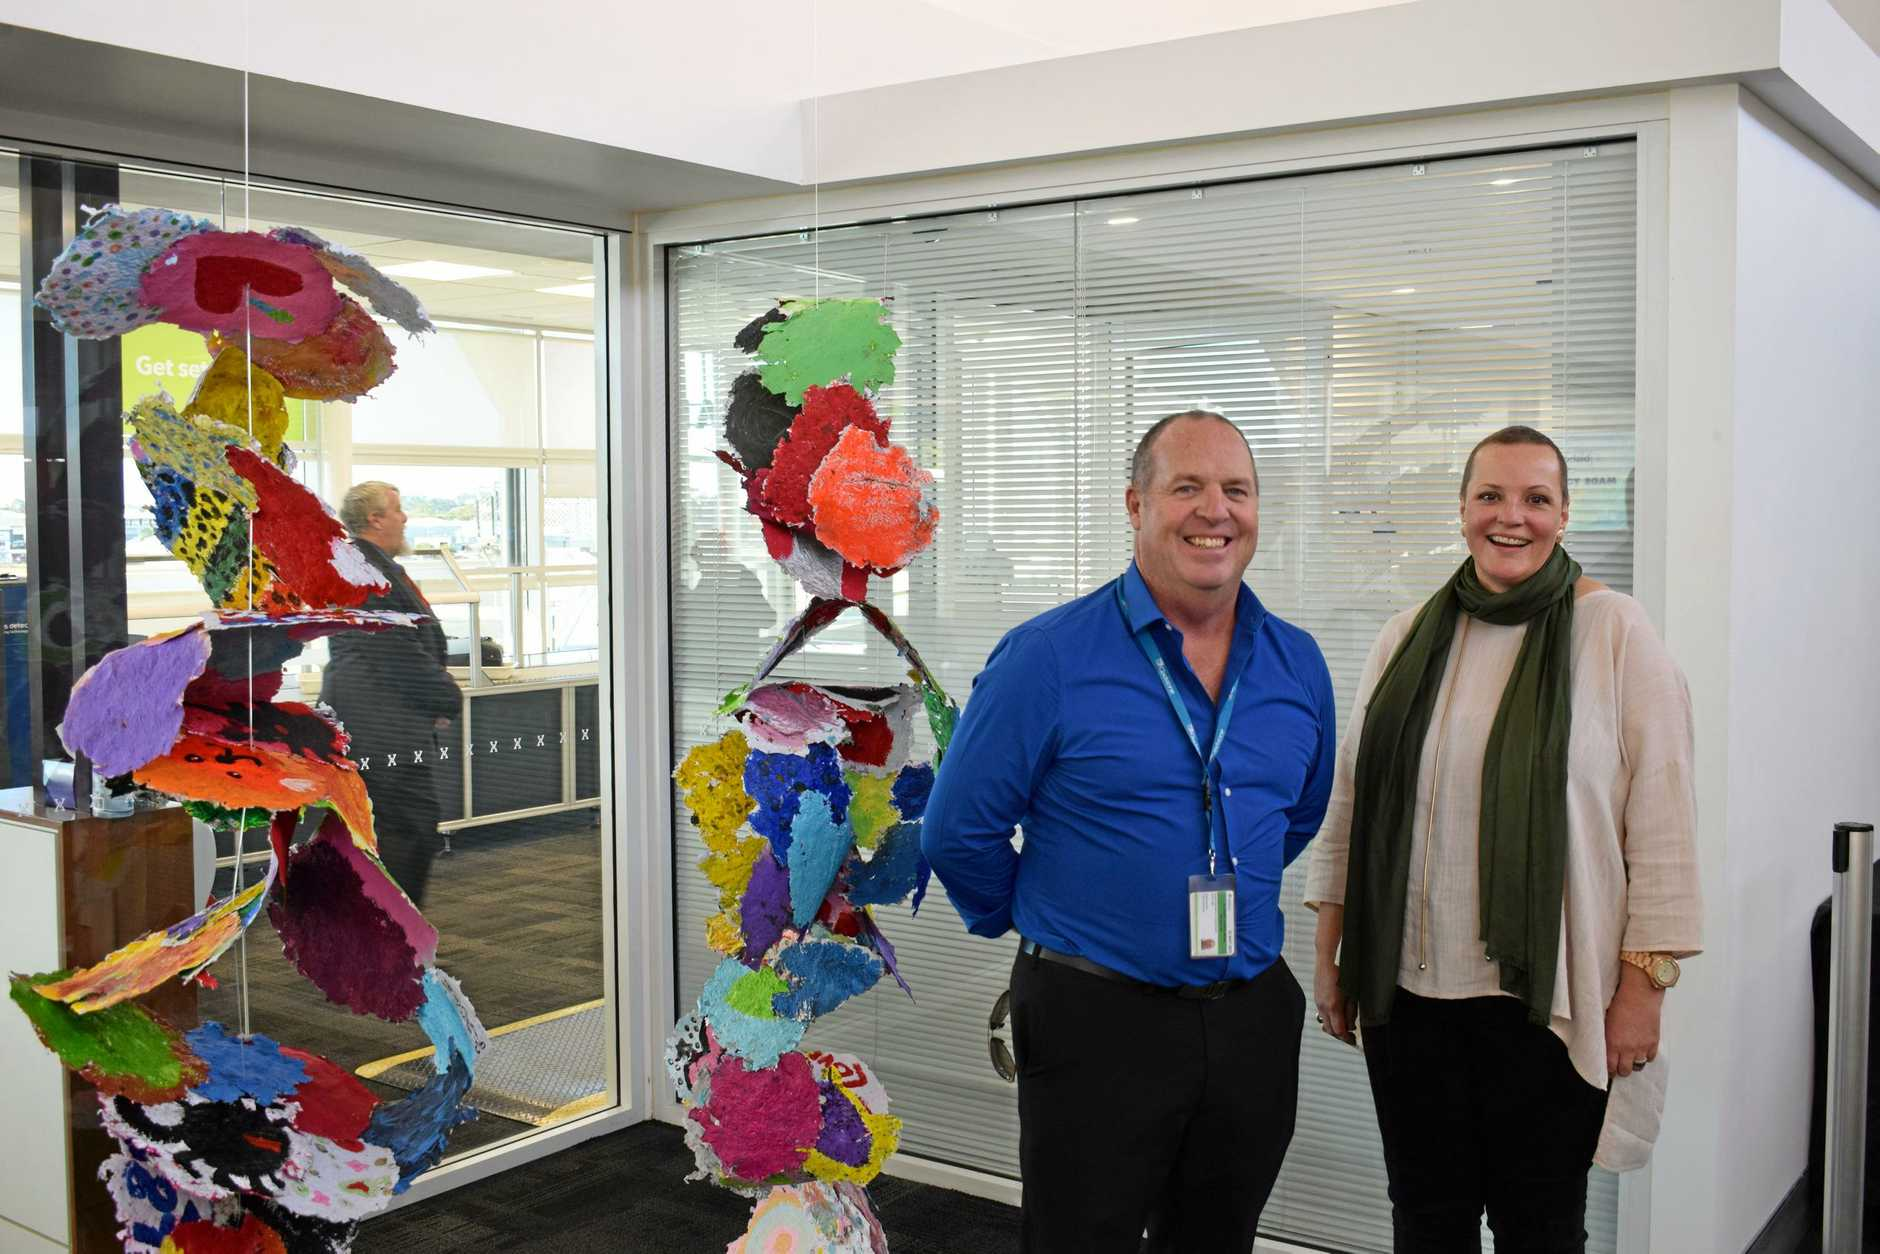 Gladstone Airport Corporation acting CEO Peter Friel and A Country Arts Practice visual and community artist Melissa Peacock in front of the Community Arts Project made by Rosella Park School students on display at Gladstone Airport.